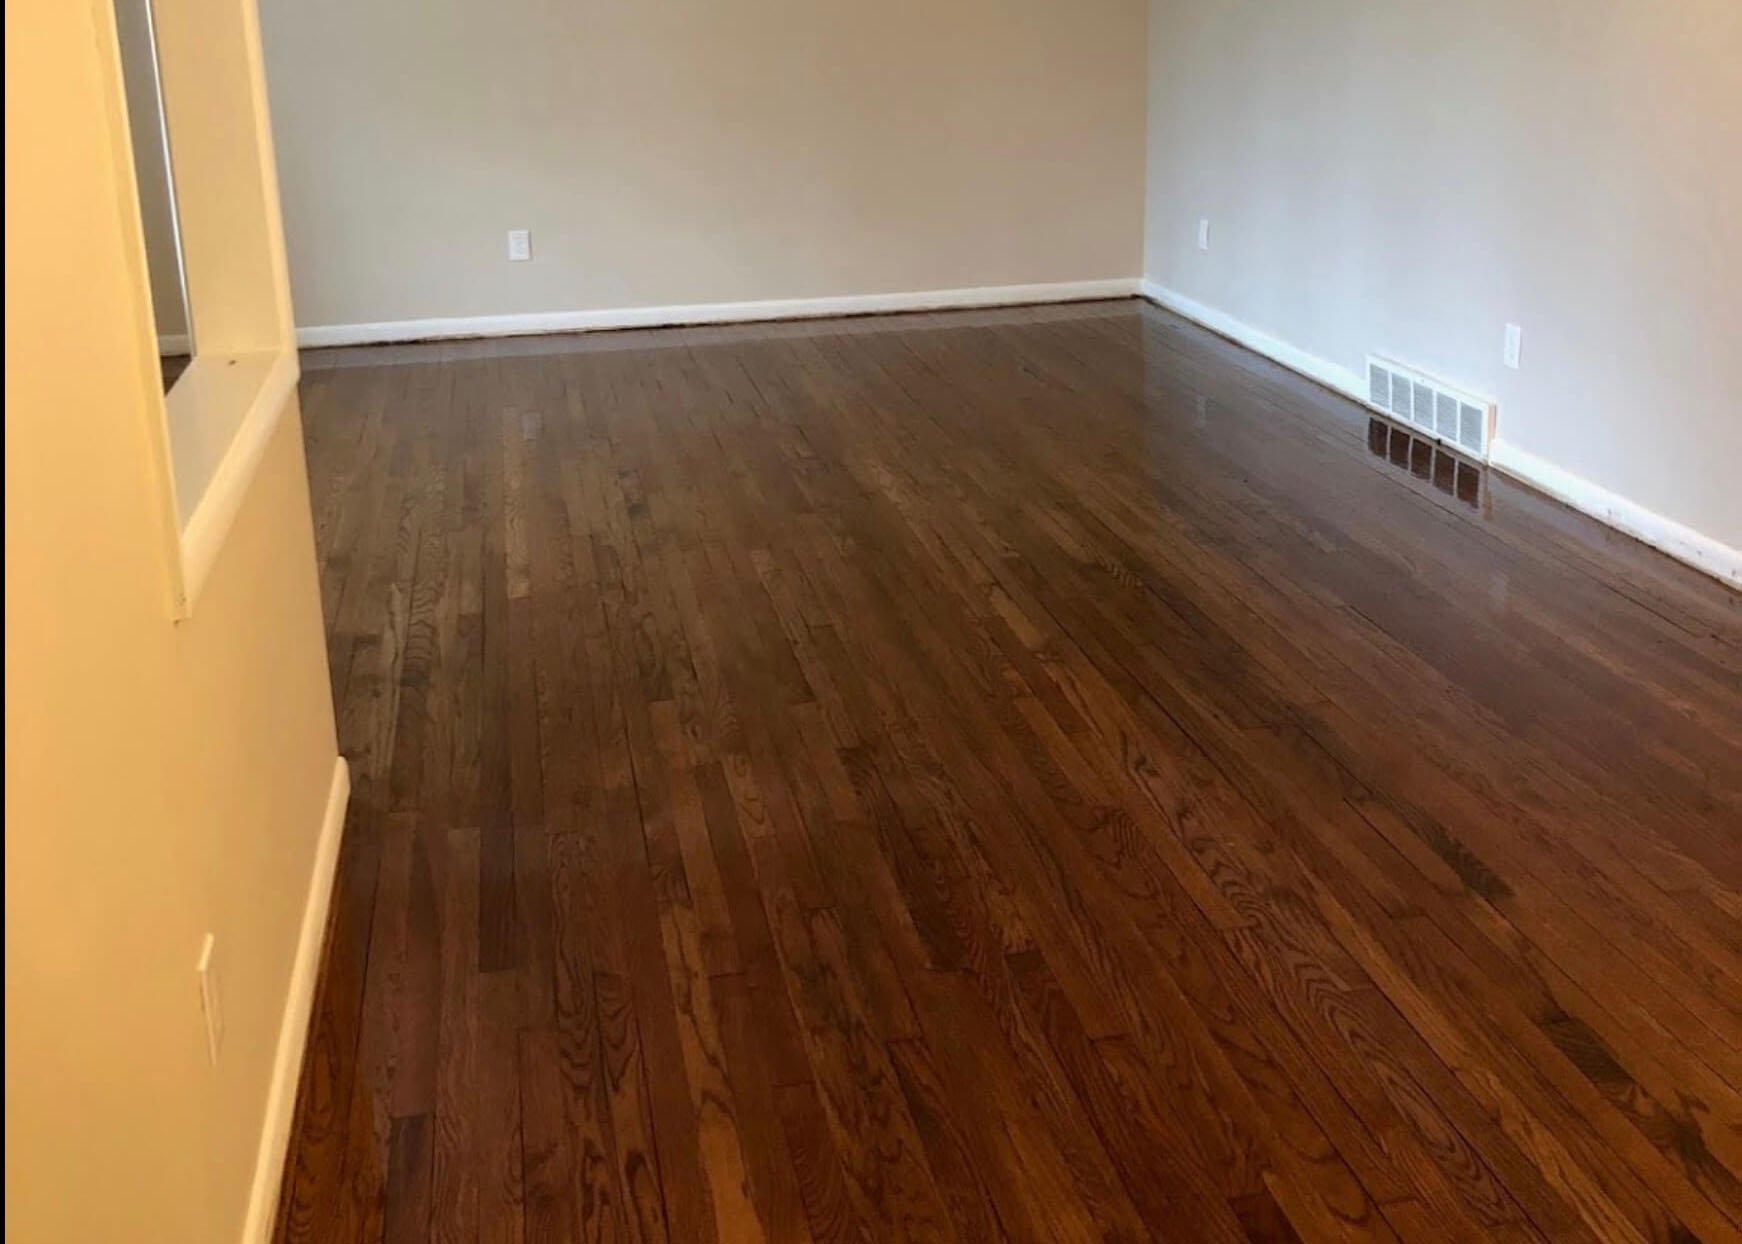 refinish and repair wood flooring